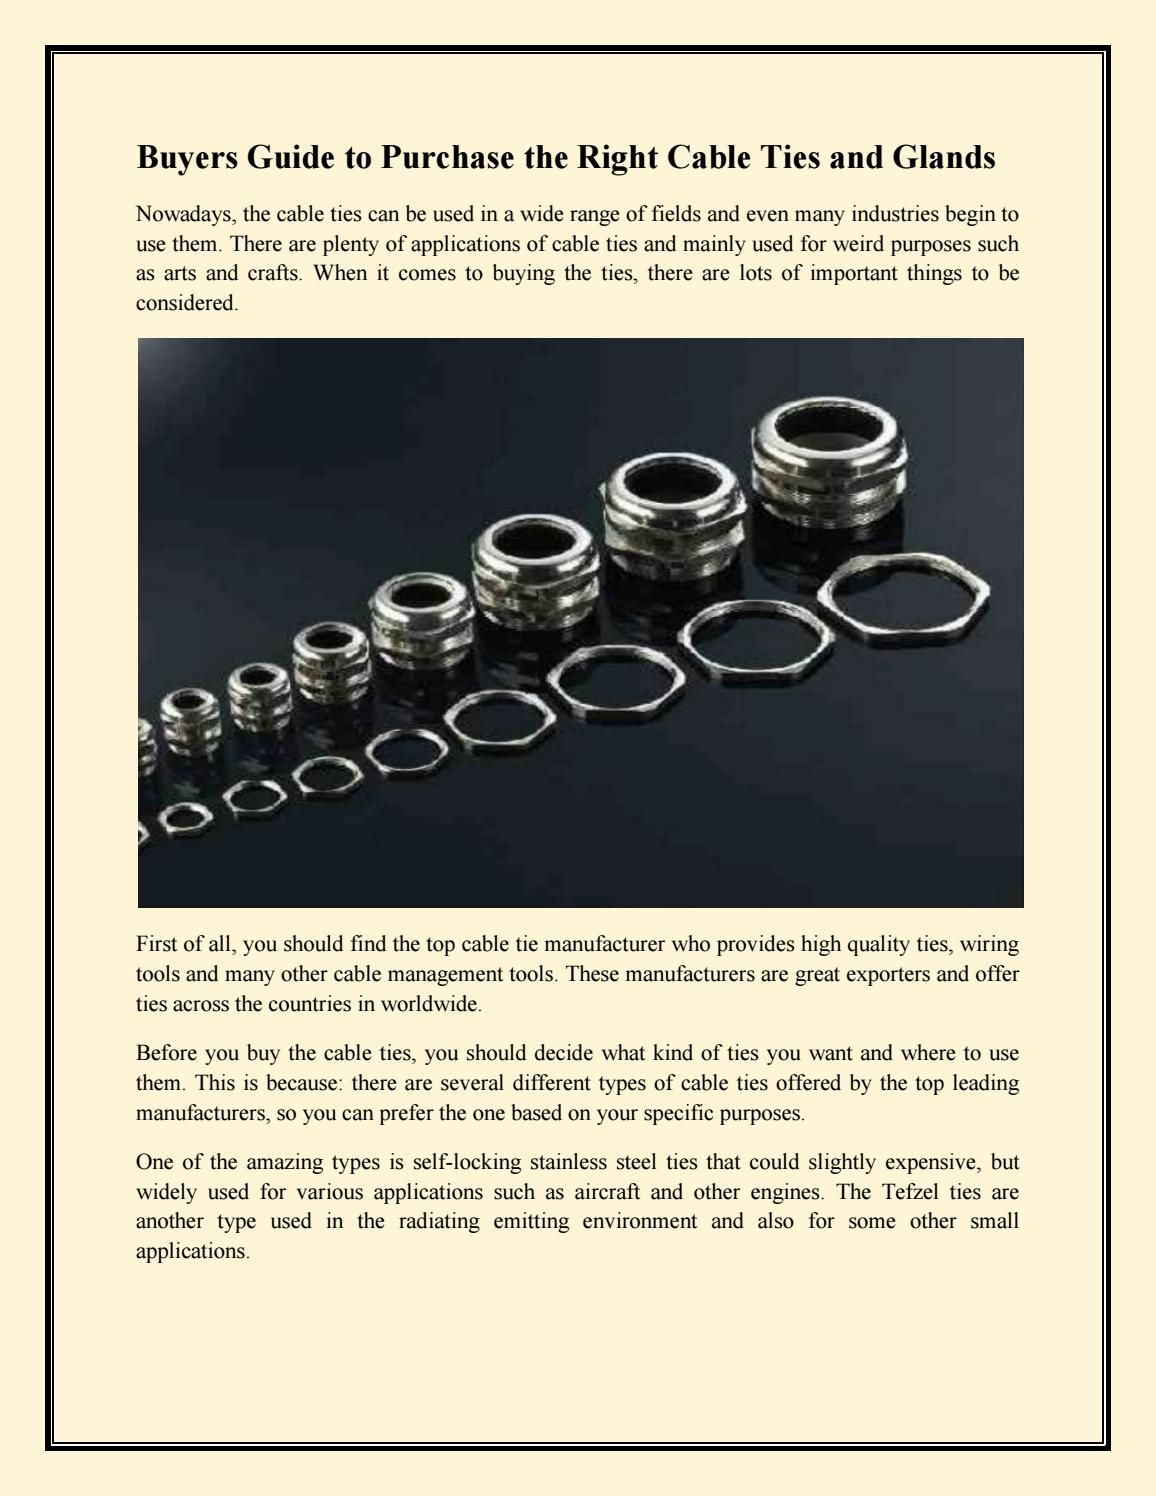 Buyers guide to purchase the right cable ties and glands | Cable ...